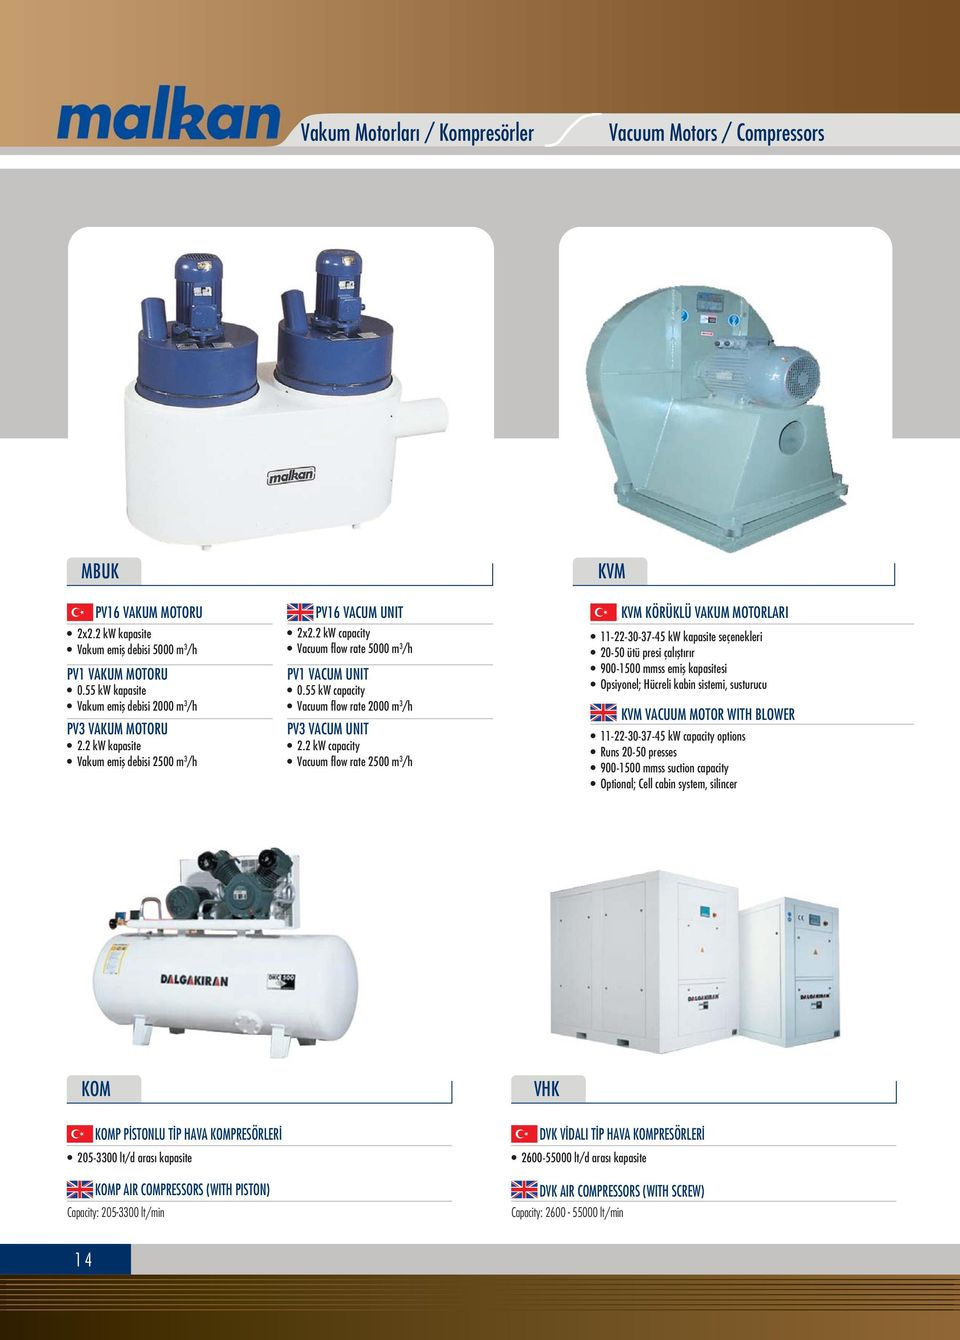 55 kw capacity Vacuum flow rate 2000 m 3 /h PV3 VACUM UNIT 2.